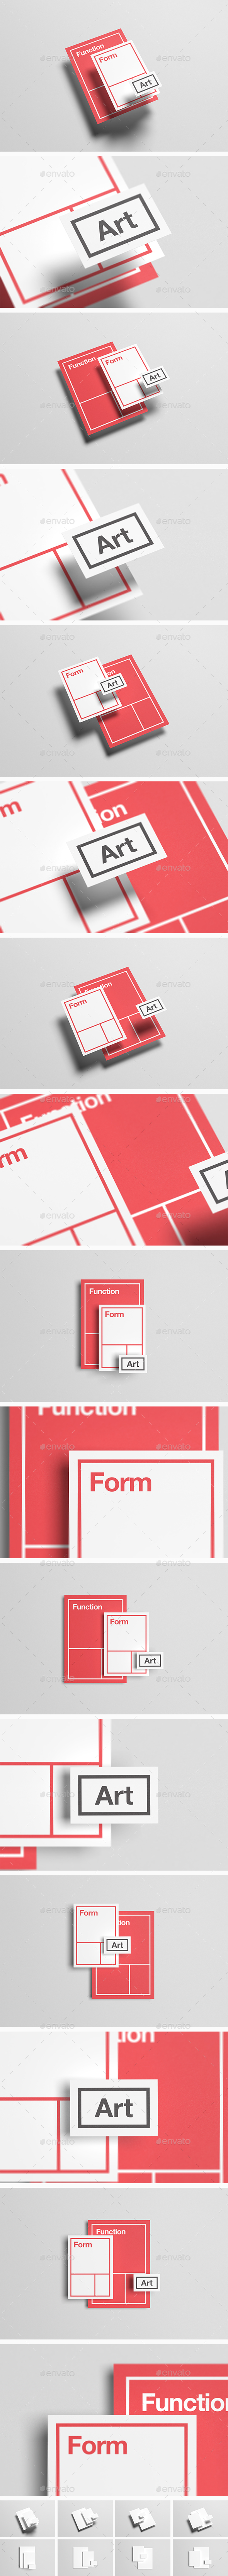 Floating Stationery Mock-Up  - A4, A5, Business Card - Stationery Print